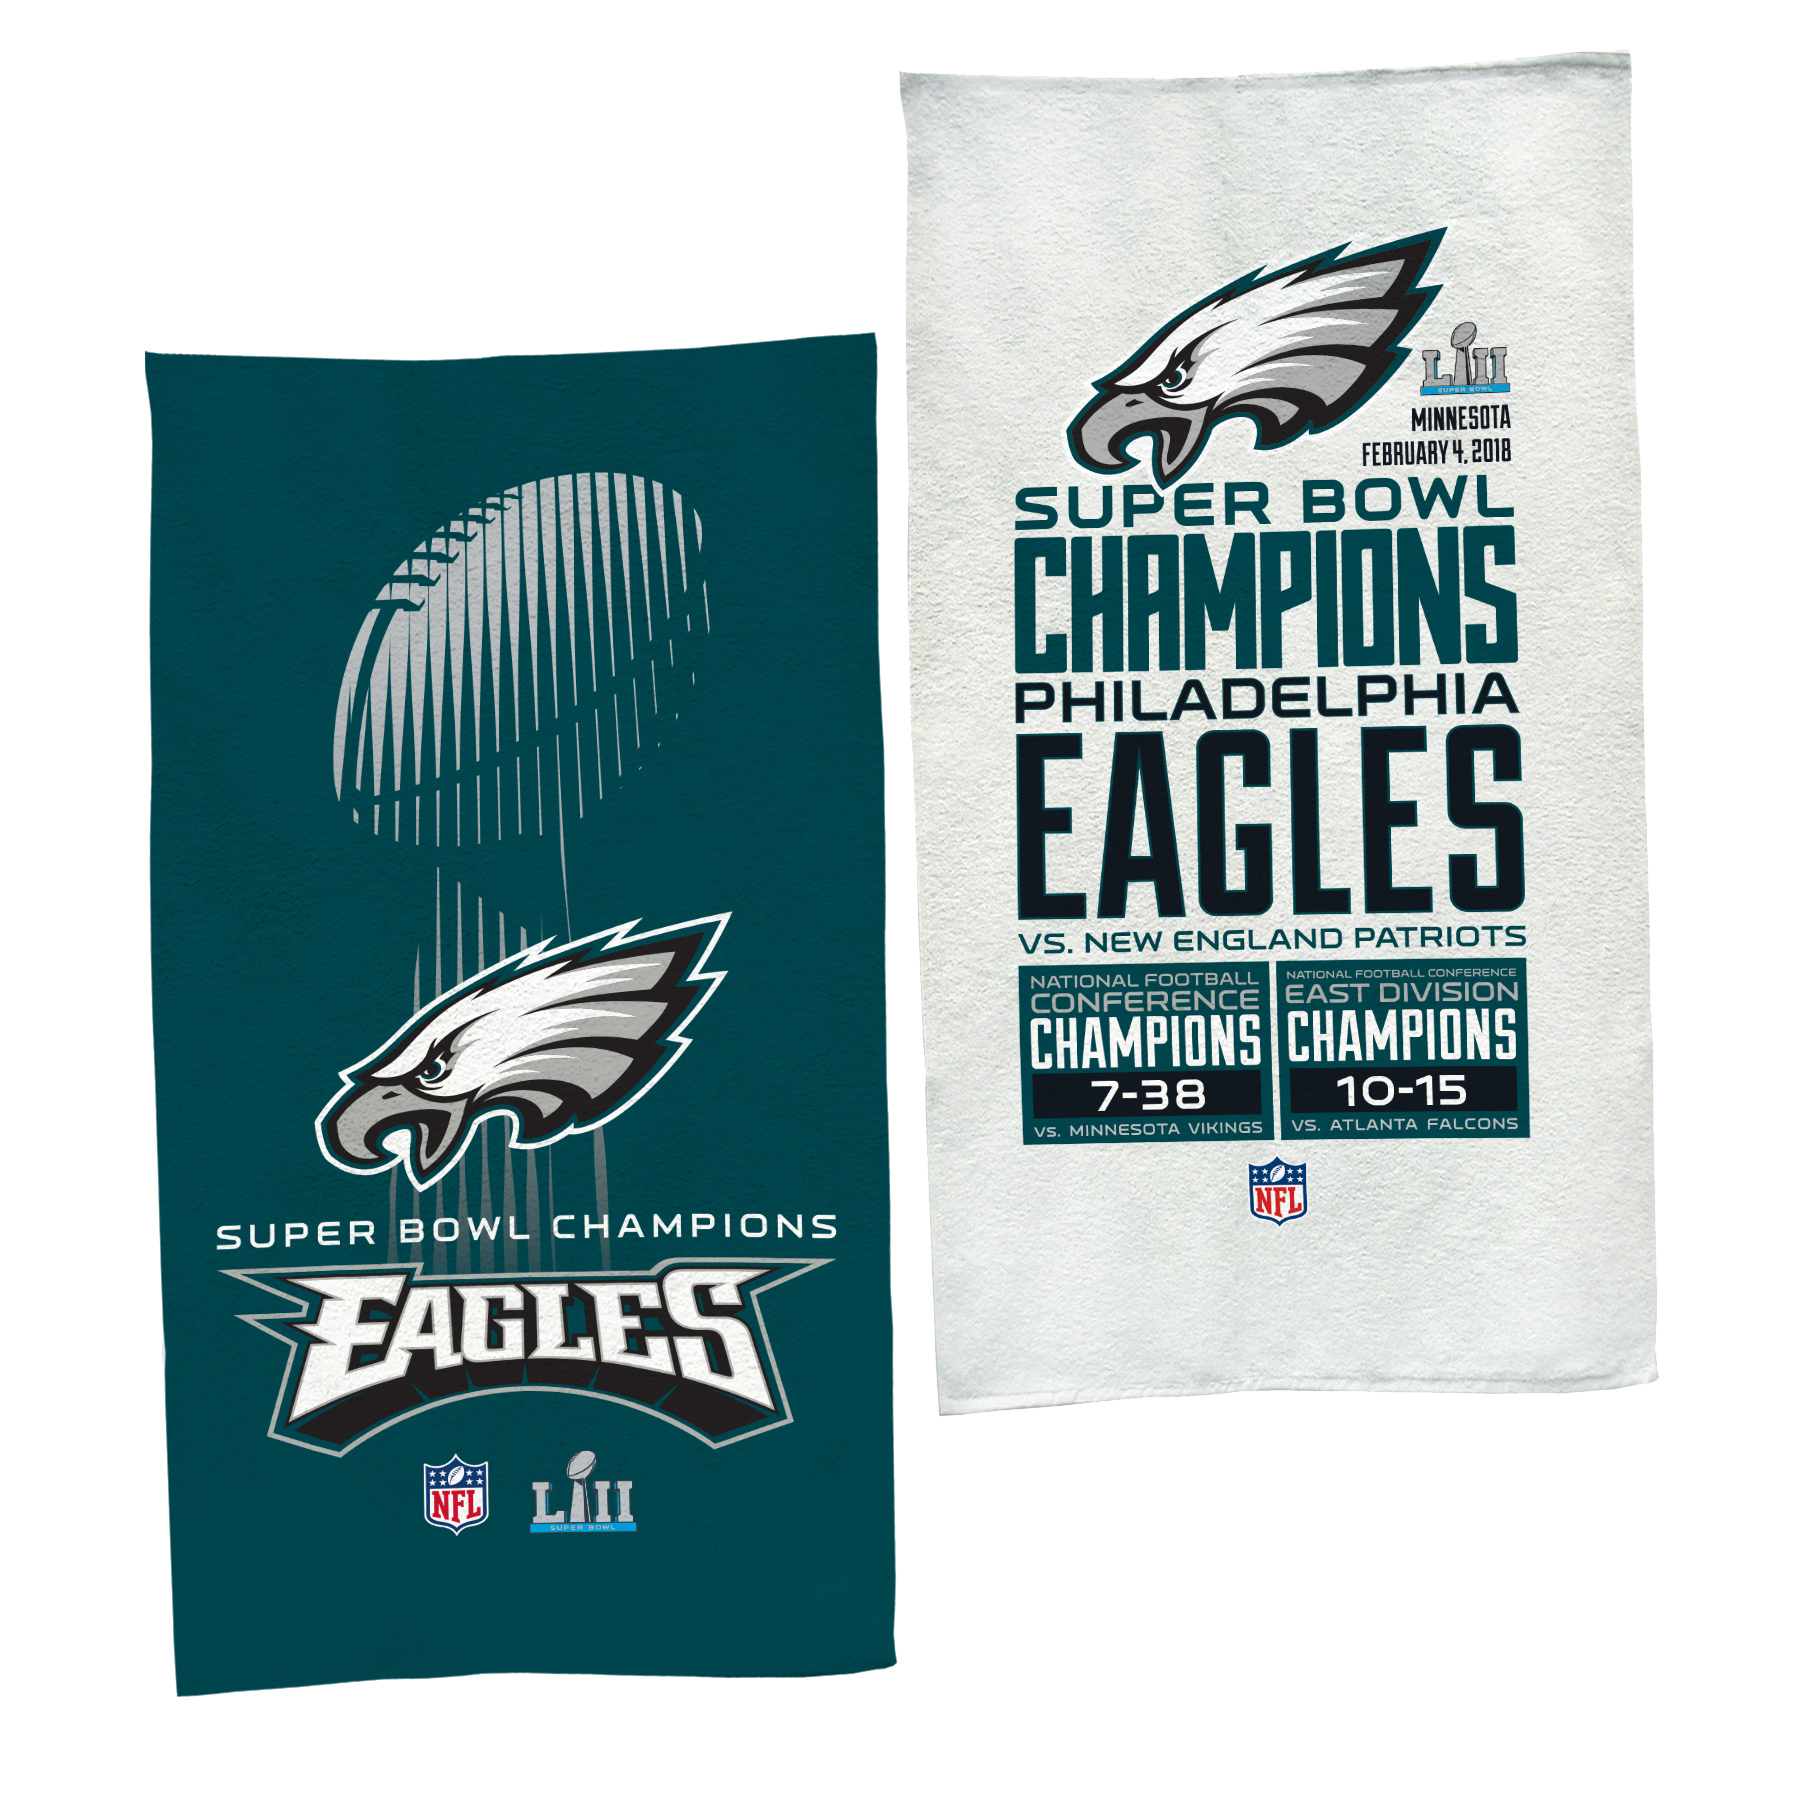 "Philadelphia Eagles WinCraft Super Bowl LII Champions Trophy Collection Locker Room Official 22"" x 42"" On-Field Celebration Towel - No Size"